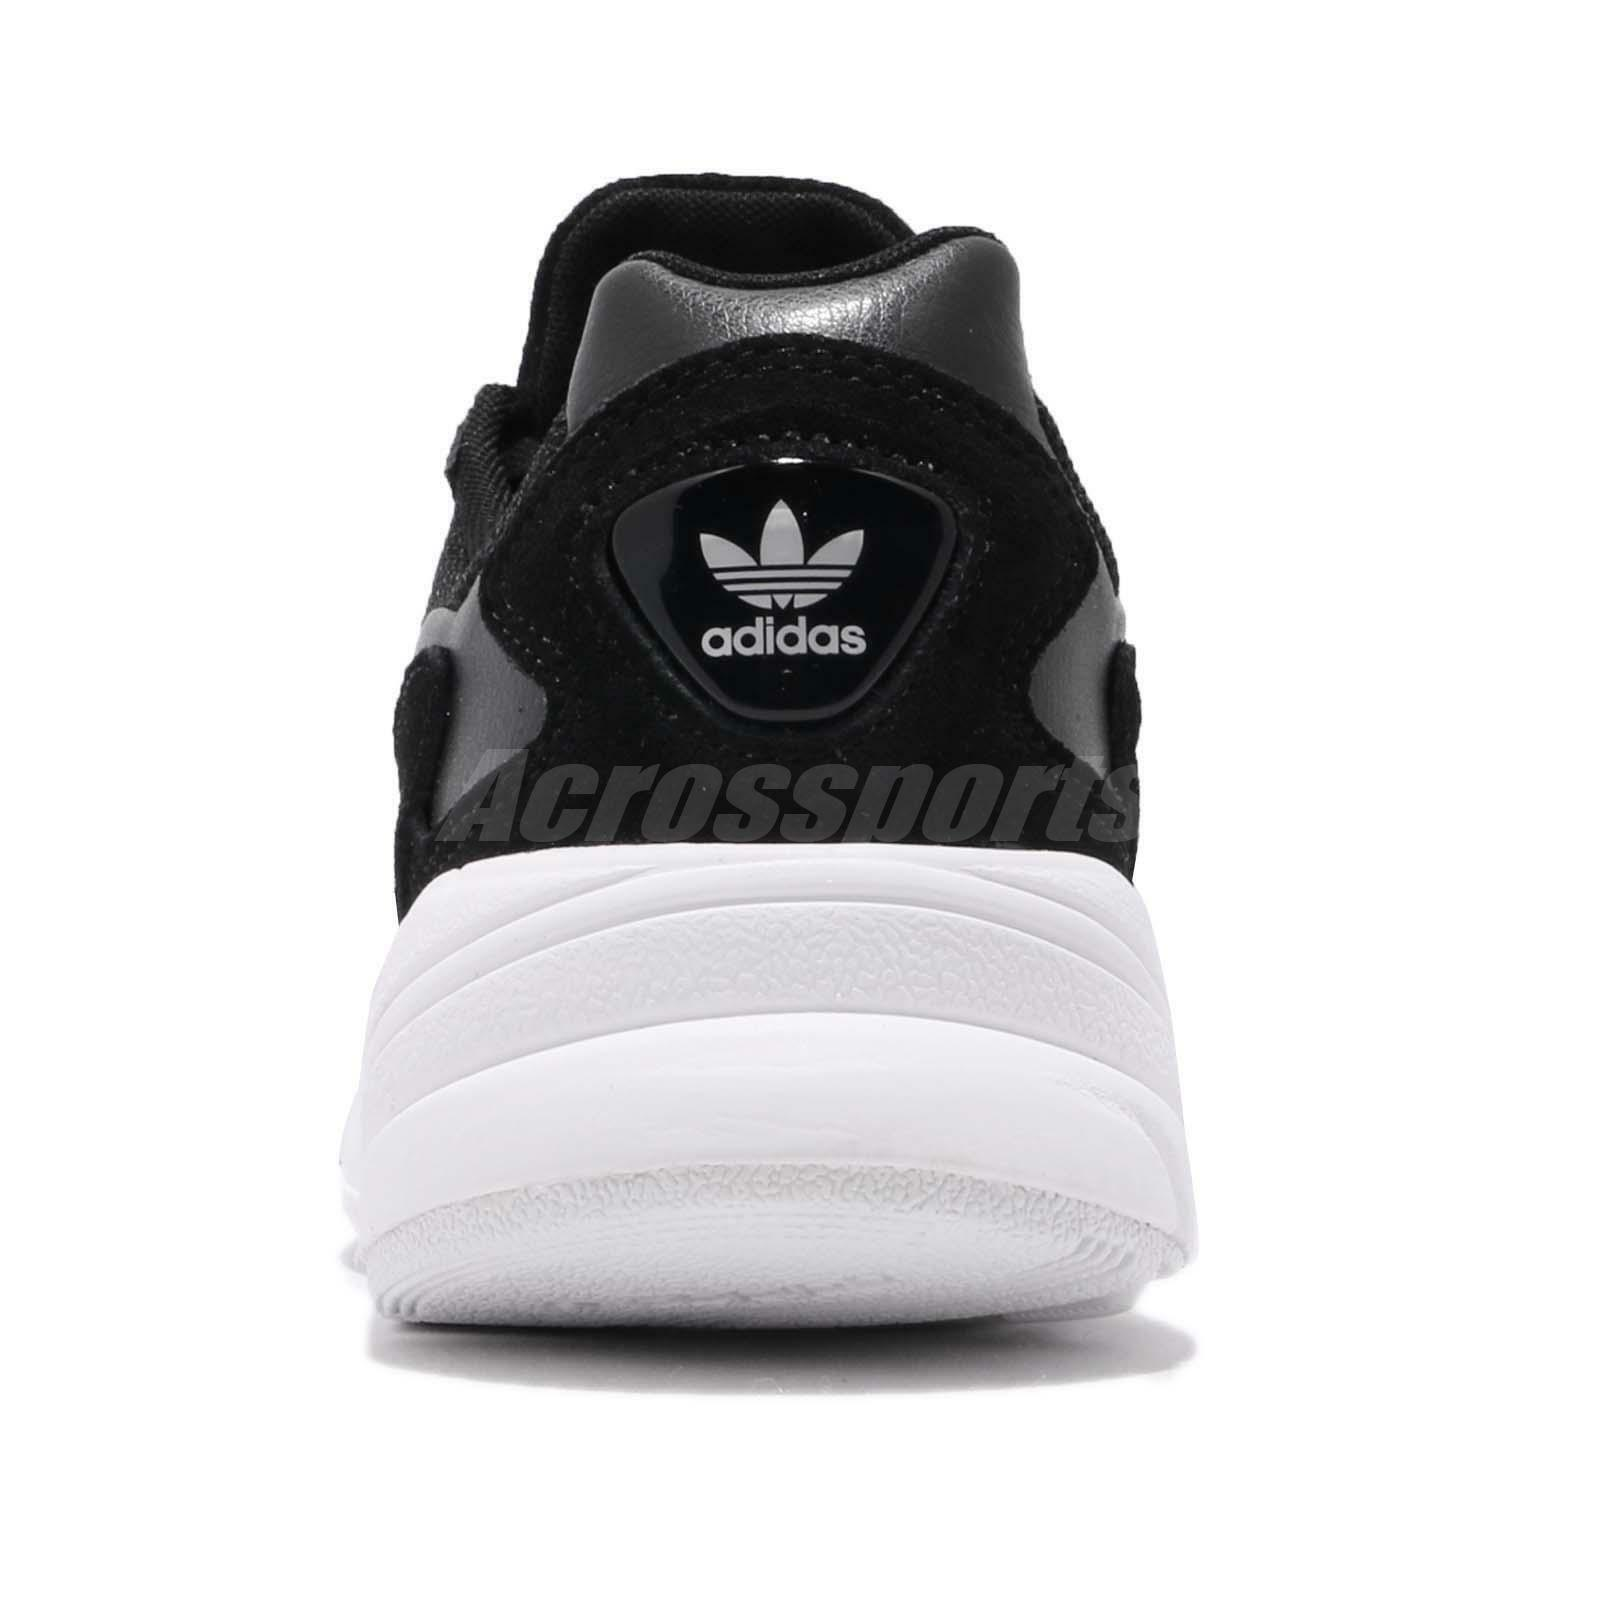 Adidas Originals Falcon W Black White Womens shoes Chunky Sneakers Sneakers Sneakers B28129 b7bbbe